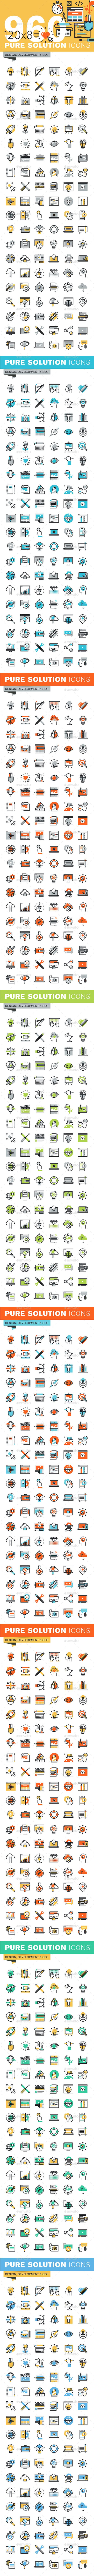 Set of Thin Line Flat Design Icons of Design, Development and SEO. Download here: http://graphicriver.net/item/set-of-thin-line-flat-design-icons-of-design-development-and-seo/14787643?ref=ksioks